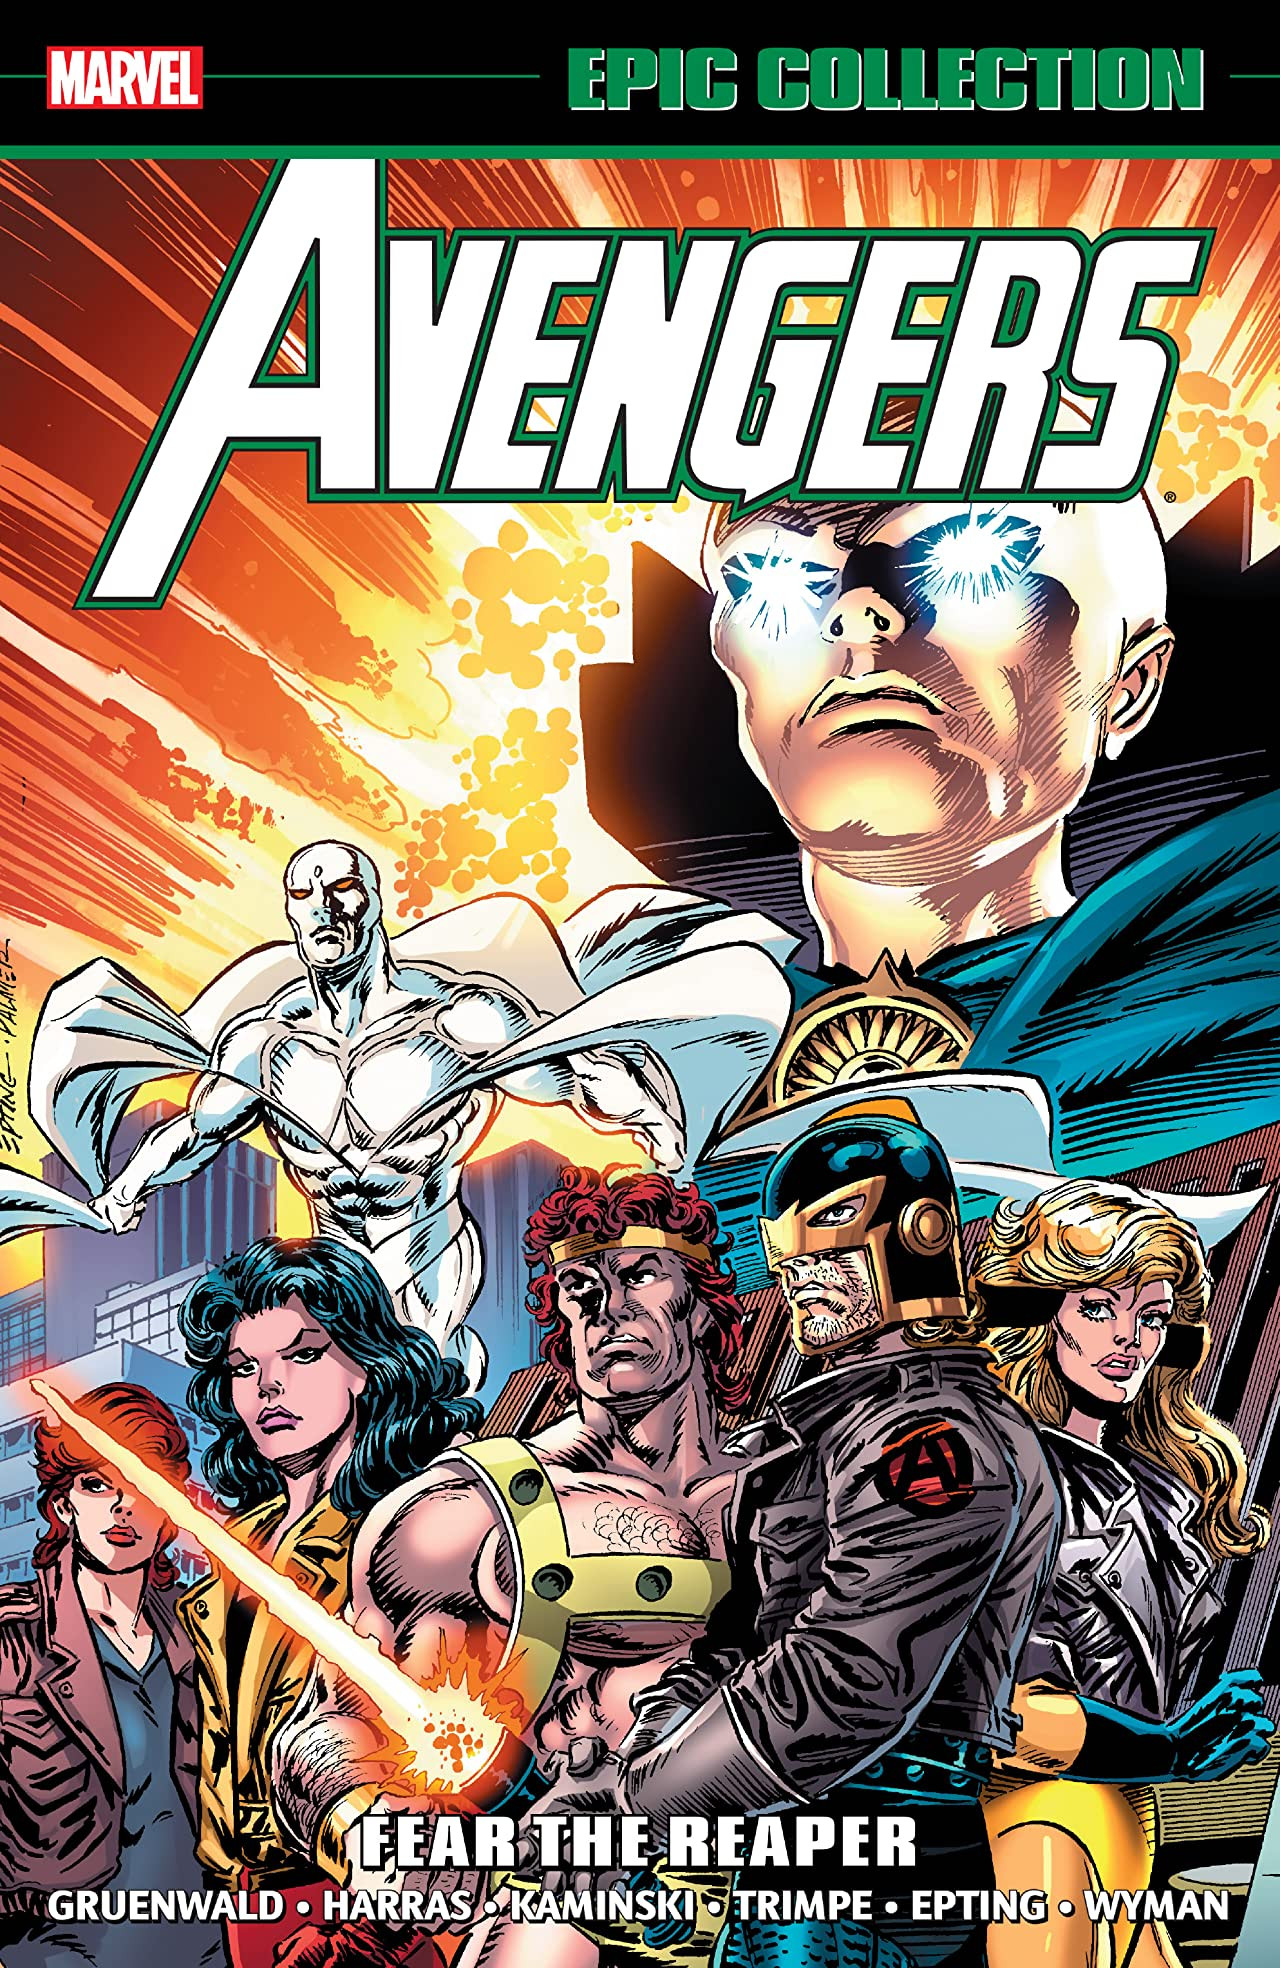 Epic Collection: Avengers Vol 1 23